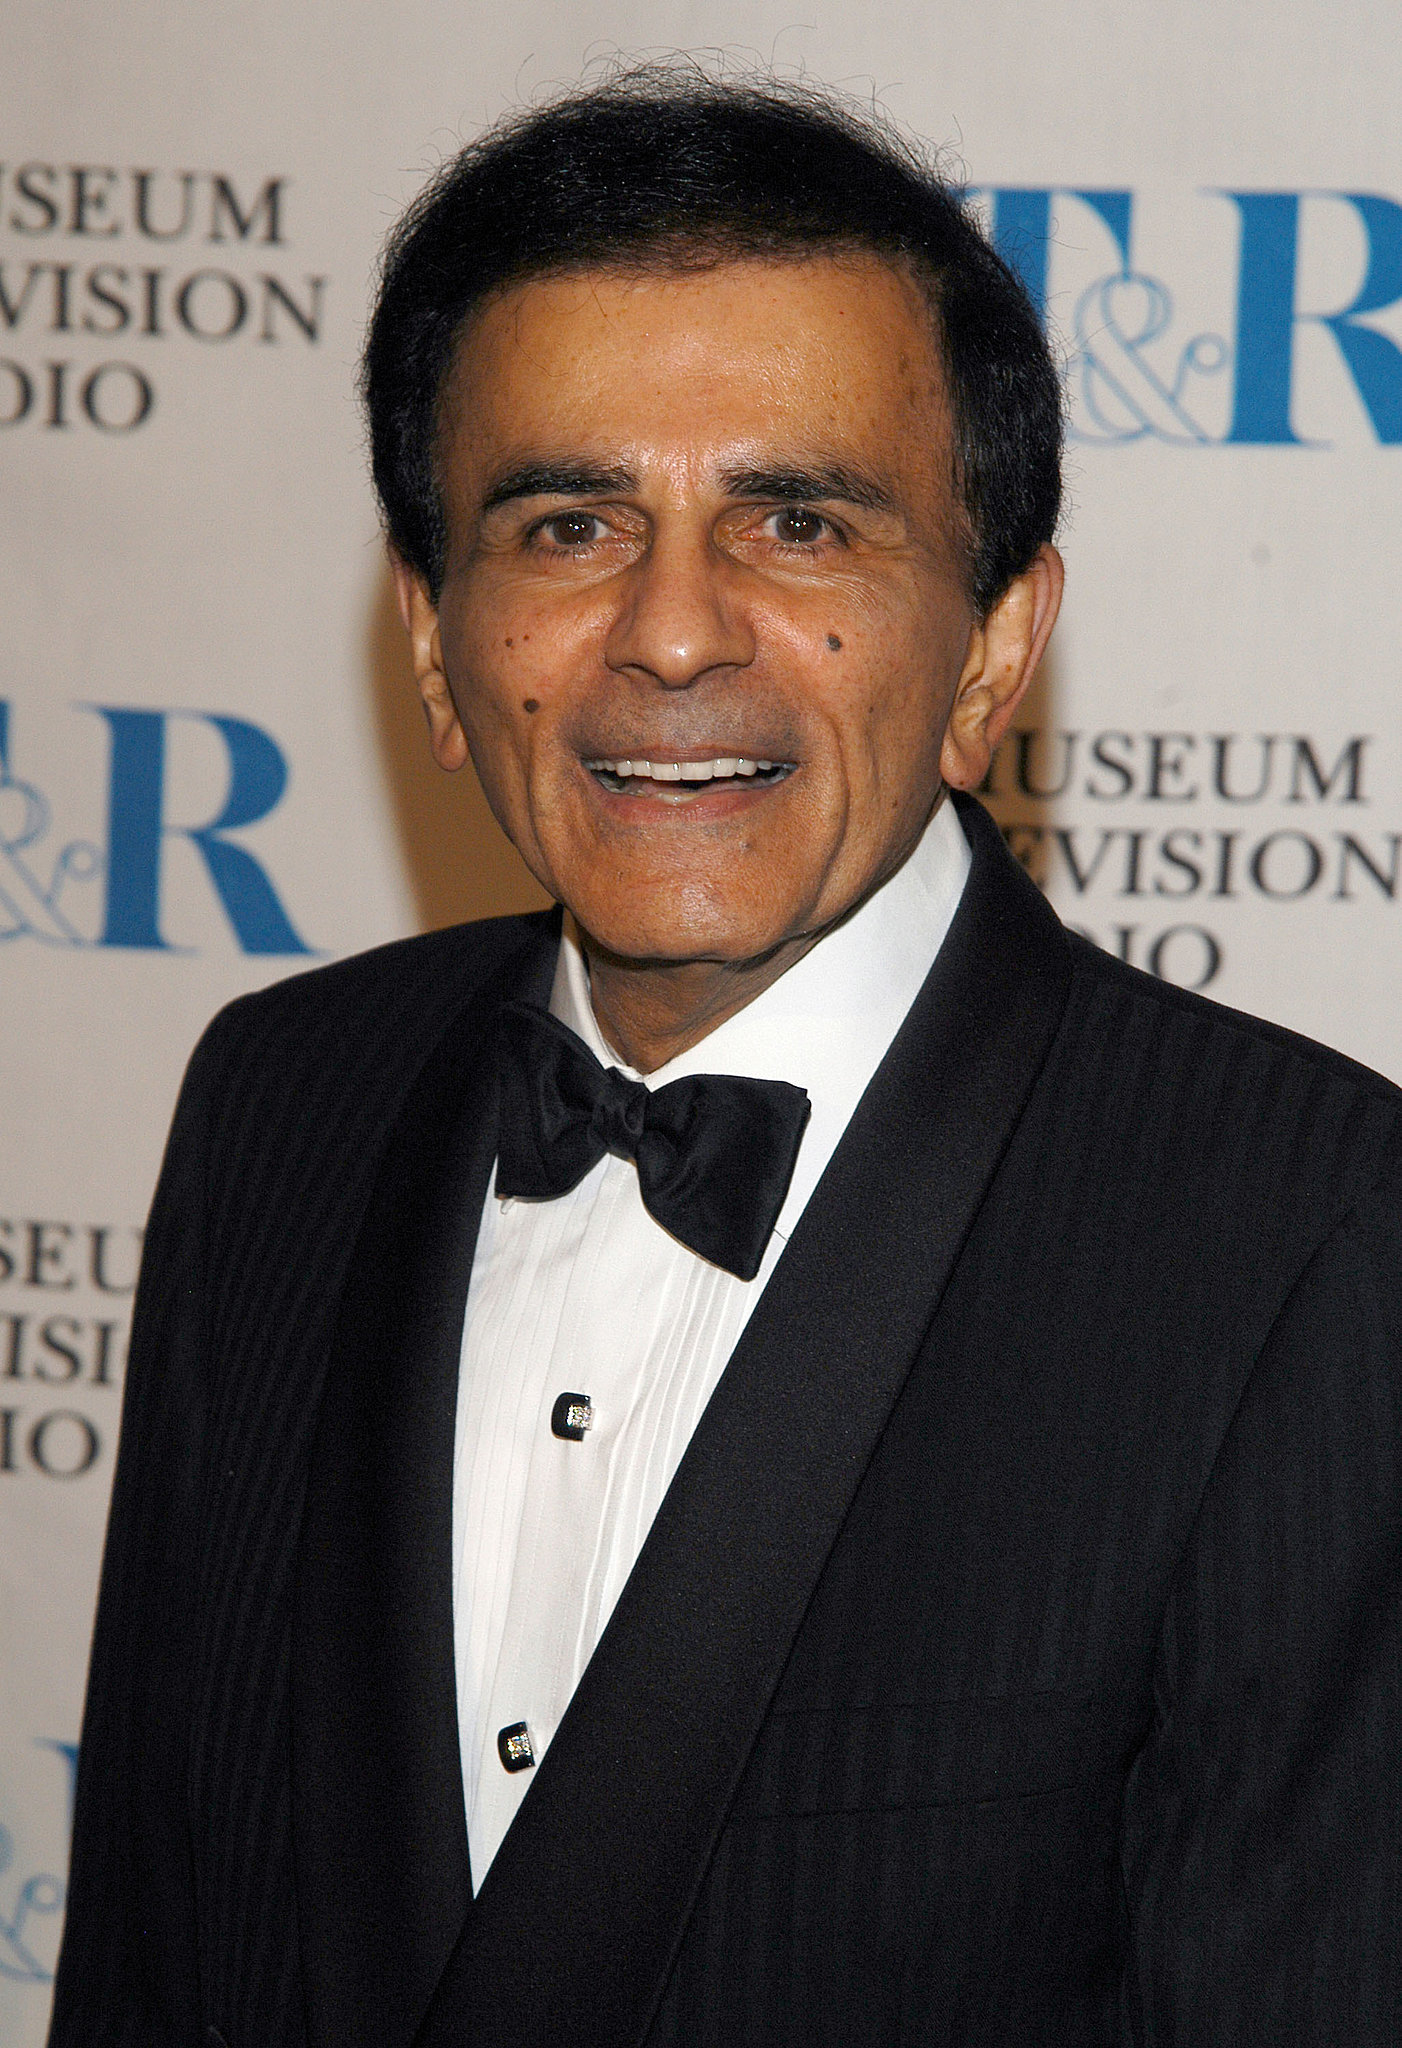 Radio icon Casey Kasem died in June at the age of 82.